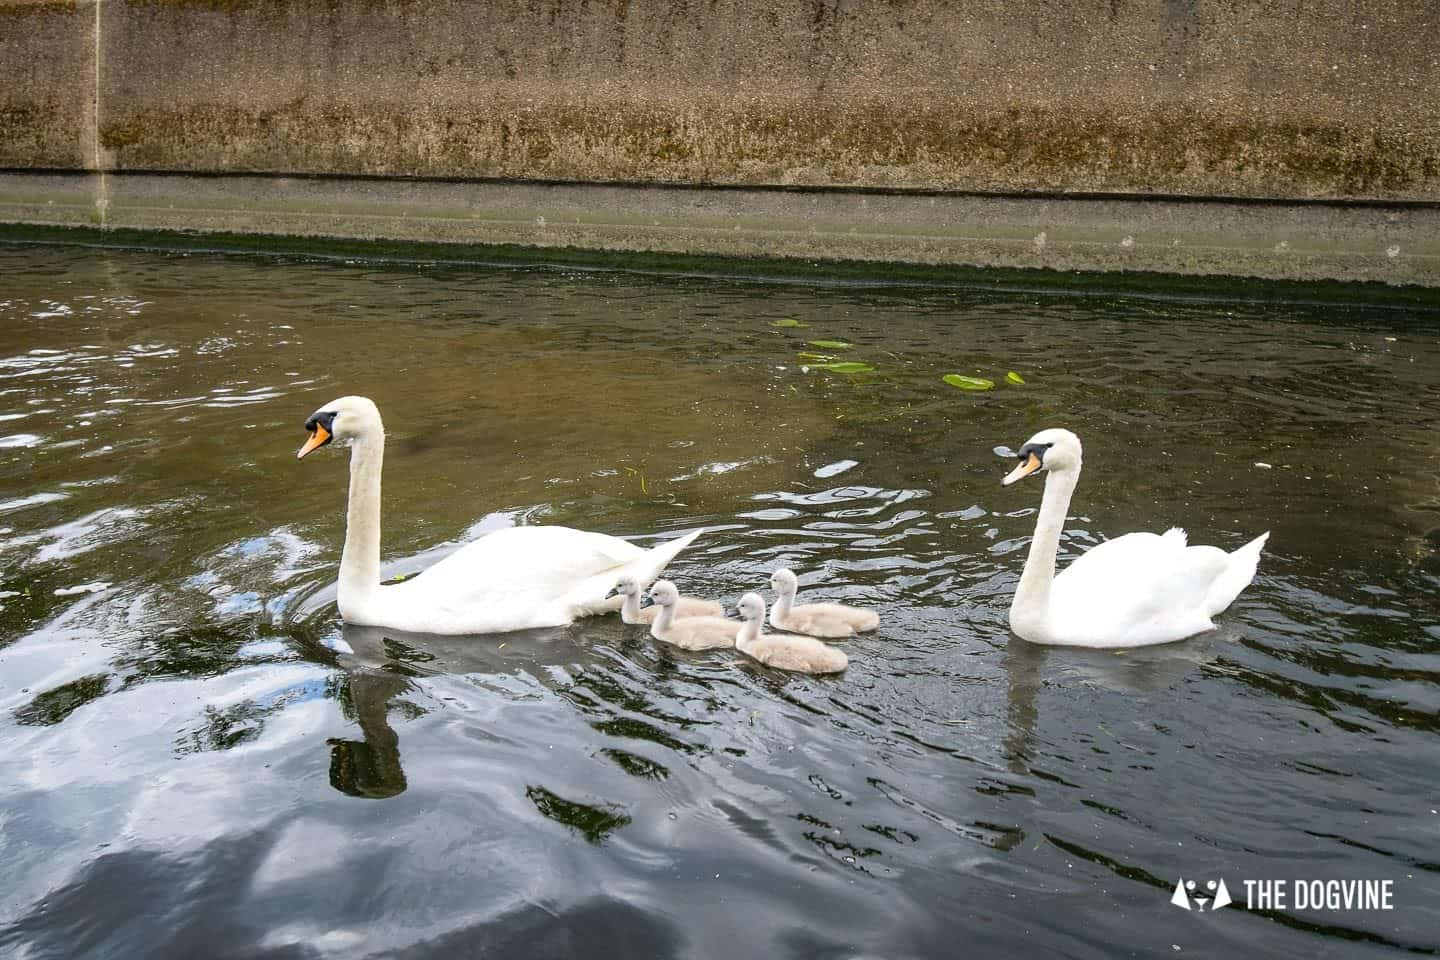 Queen Elizabeth Olympic Park Dog-friendly Boat Tours London - Lee and Stort 15